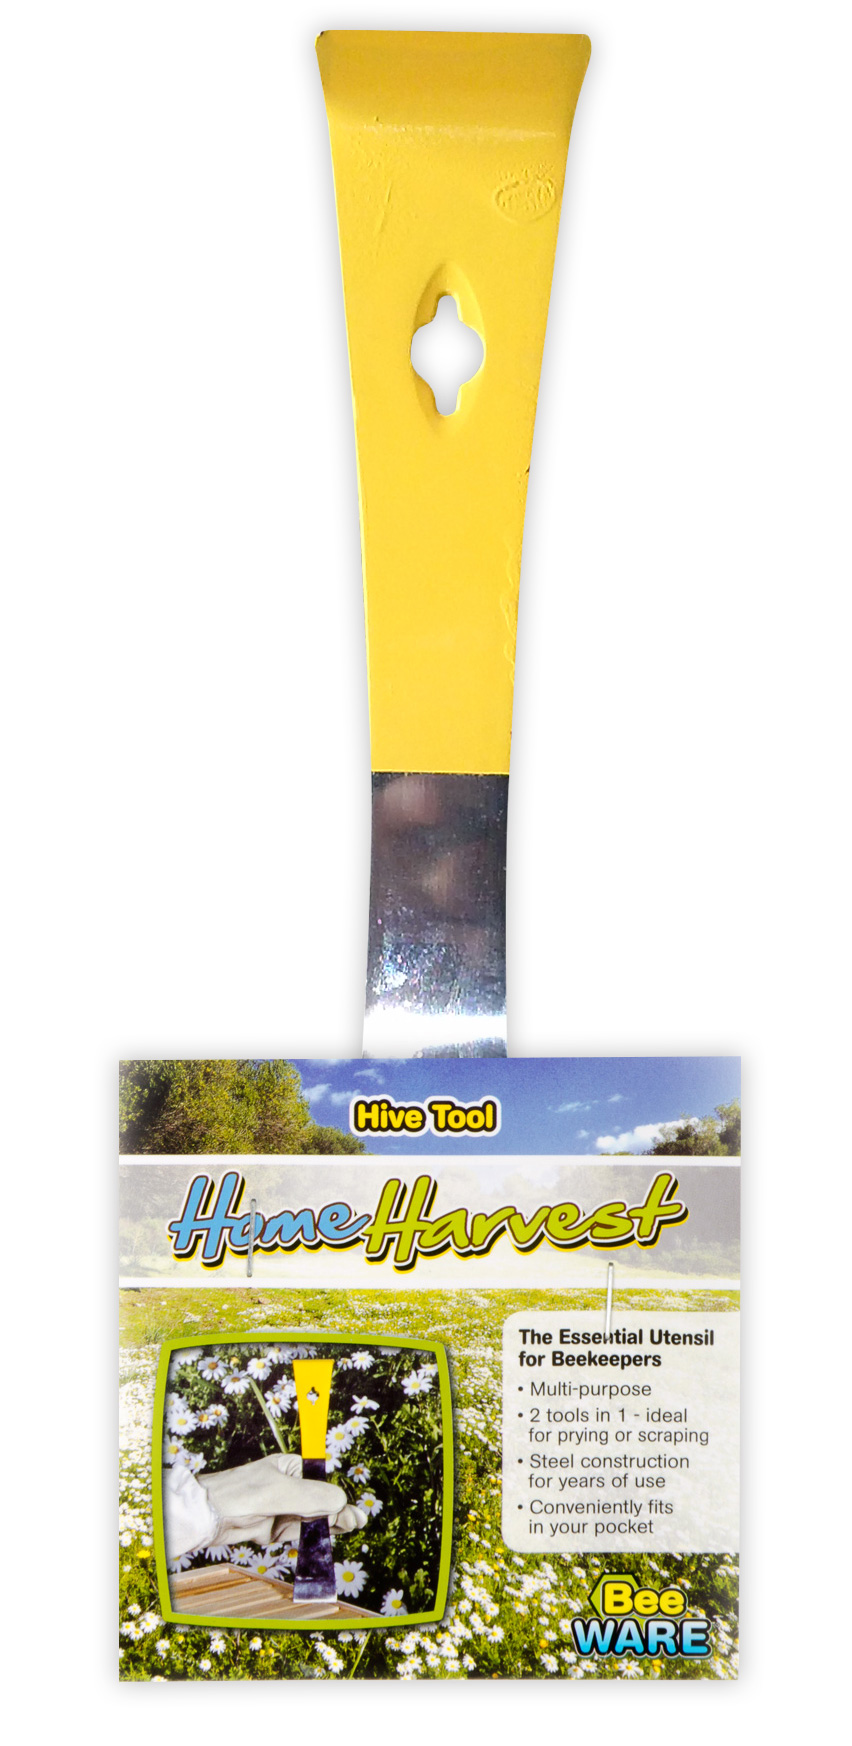 Home Harvest Hive Tool